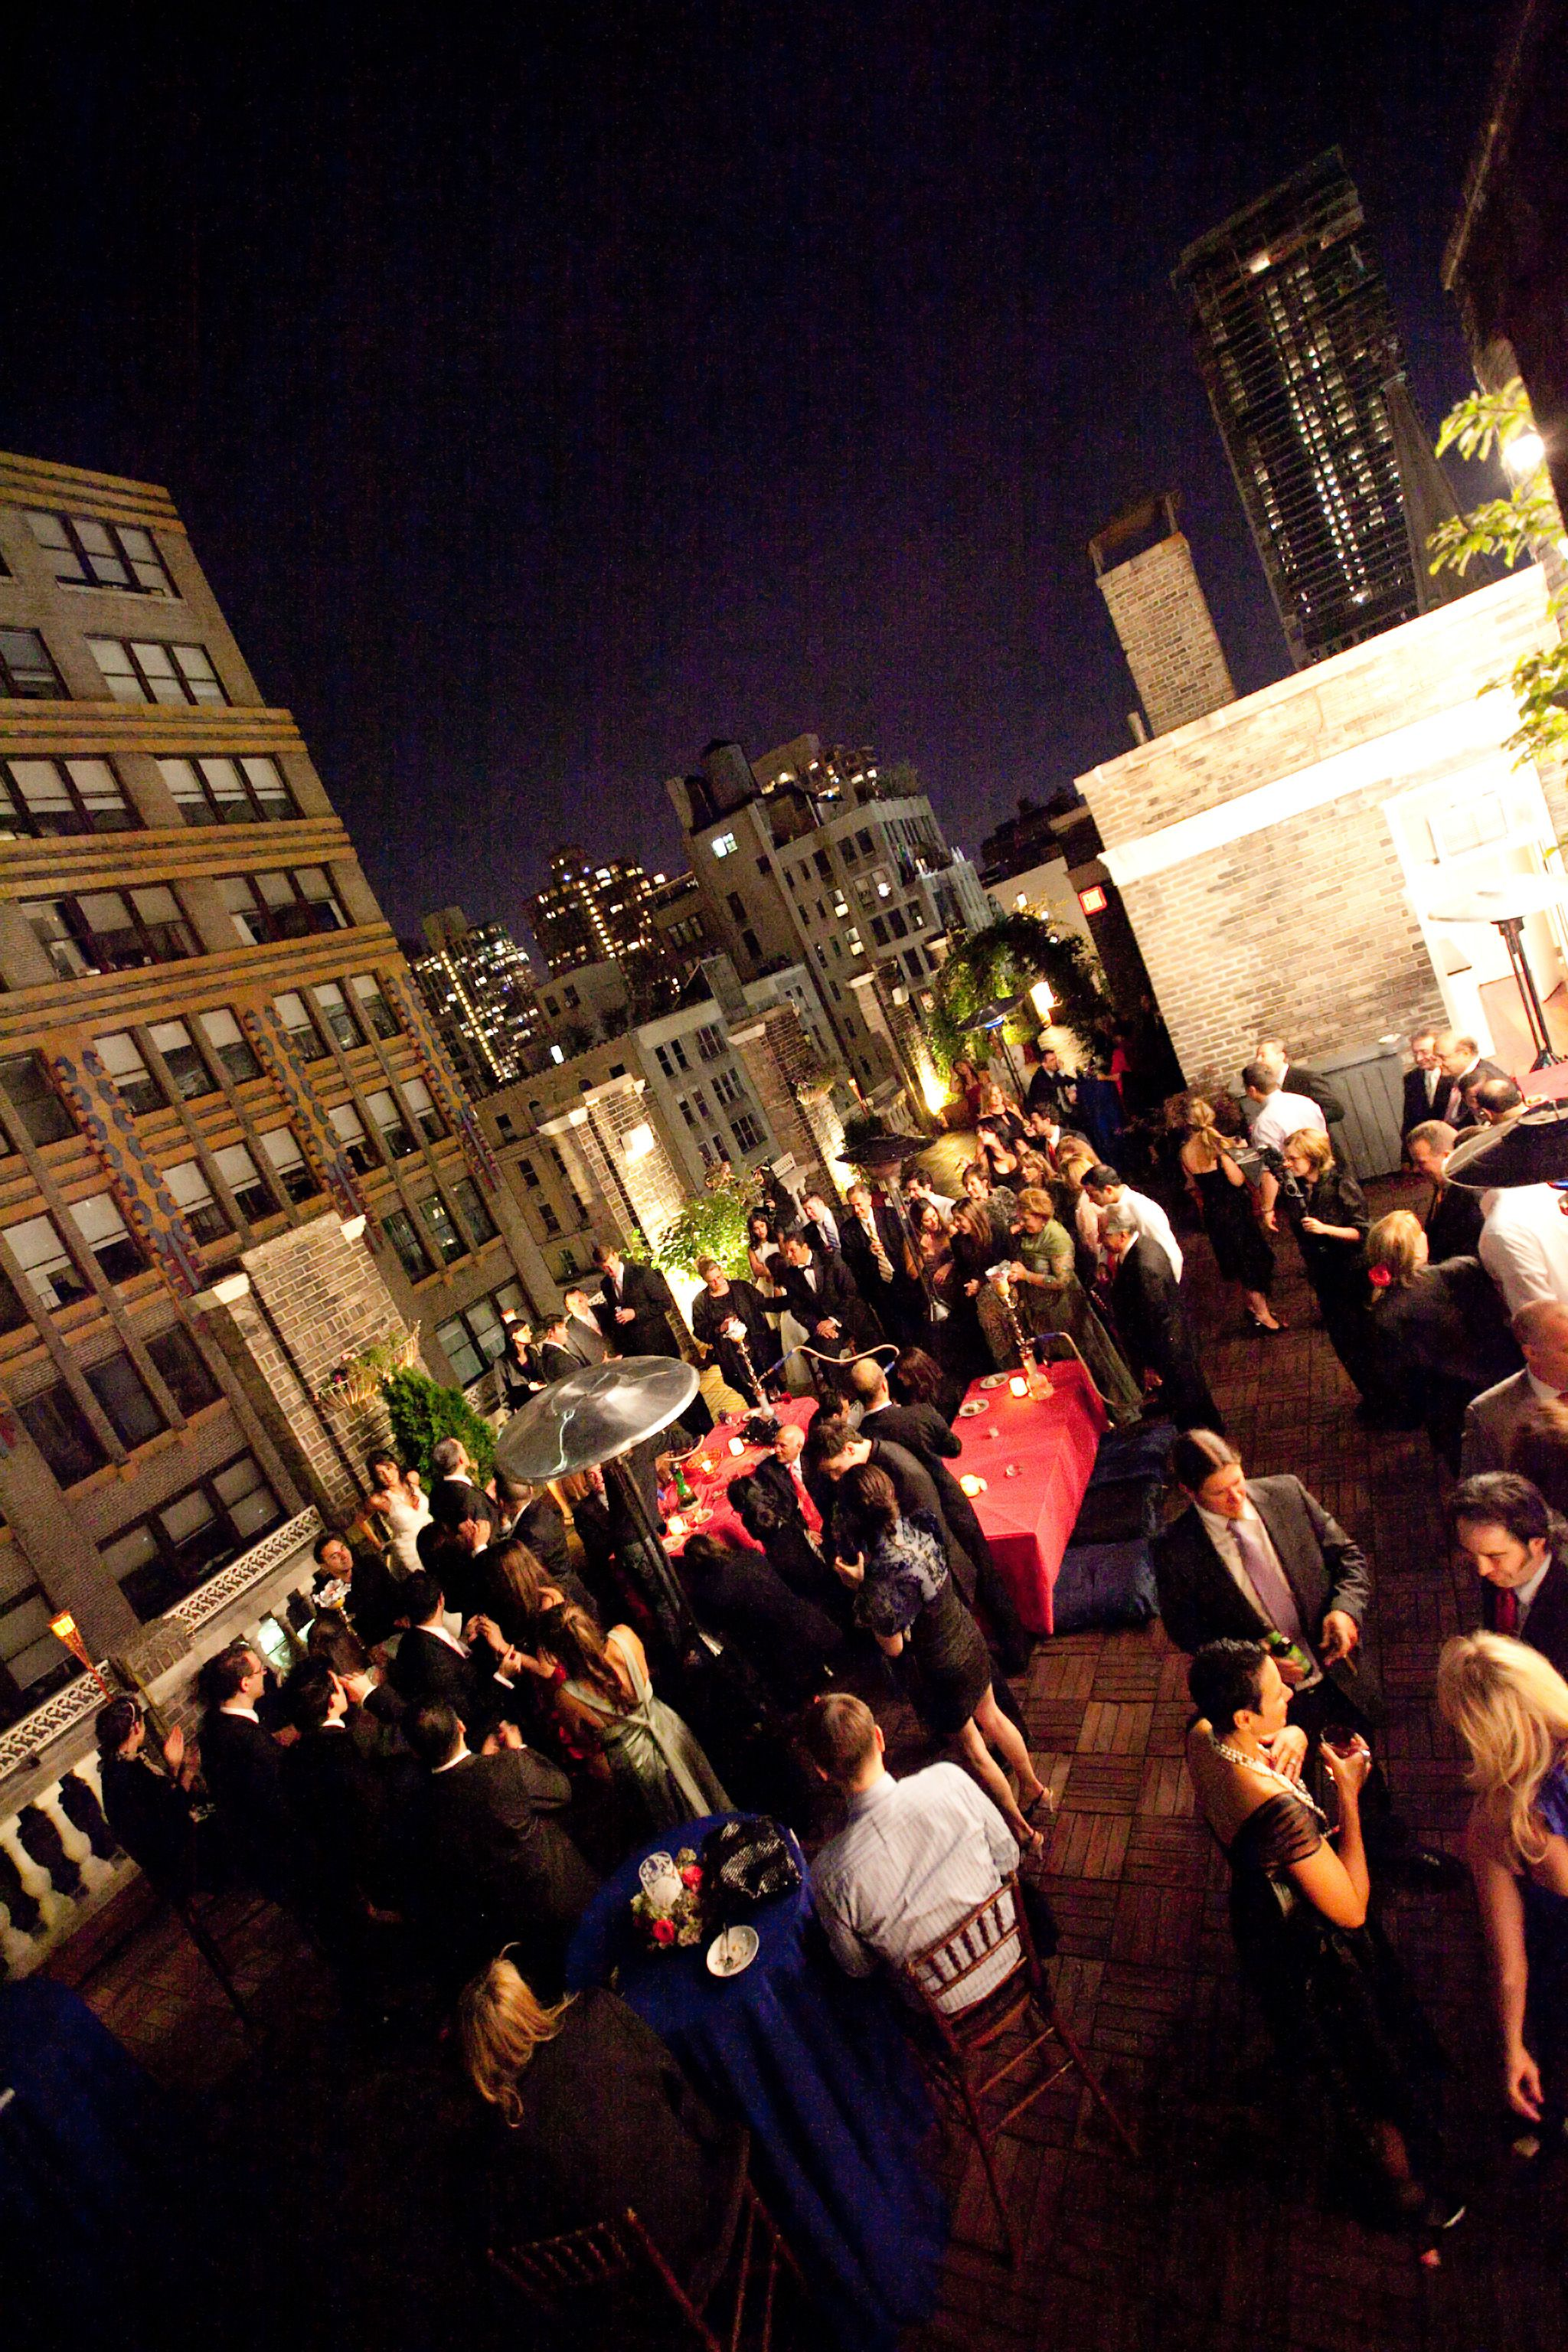 Midtown Loft Terrace Weddings Price Out And Compare Wedding Costs For Ceremony Reception Venues In New York Ny